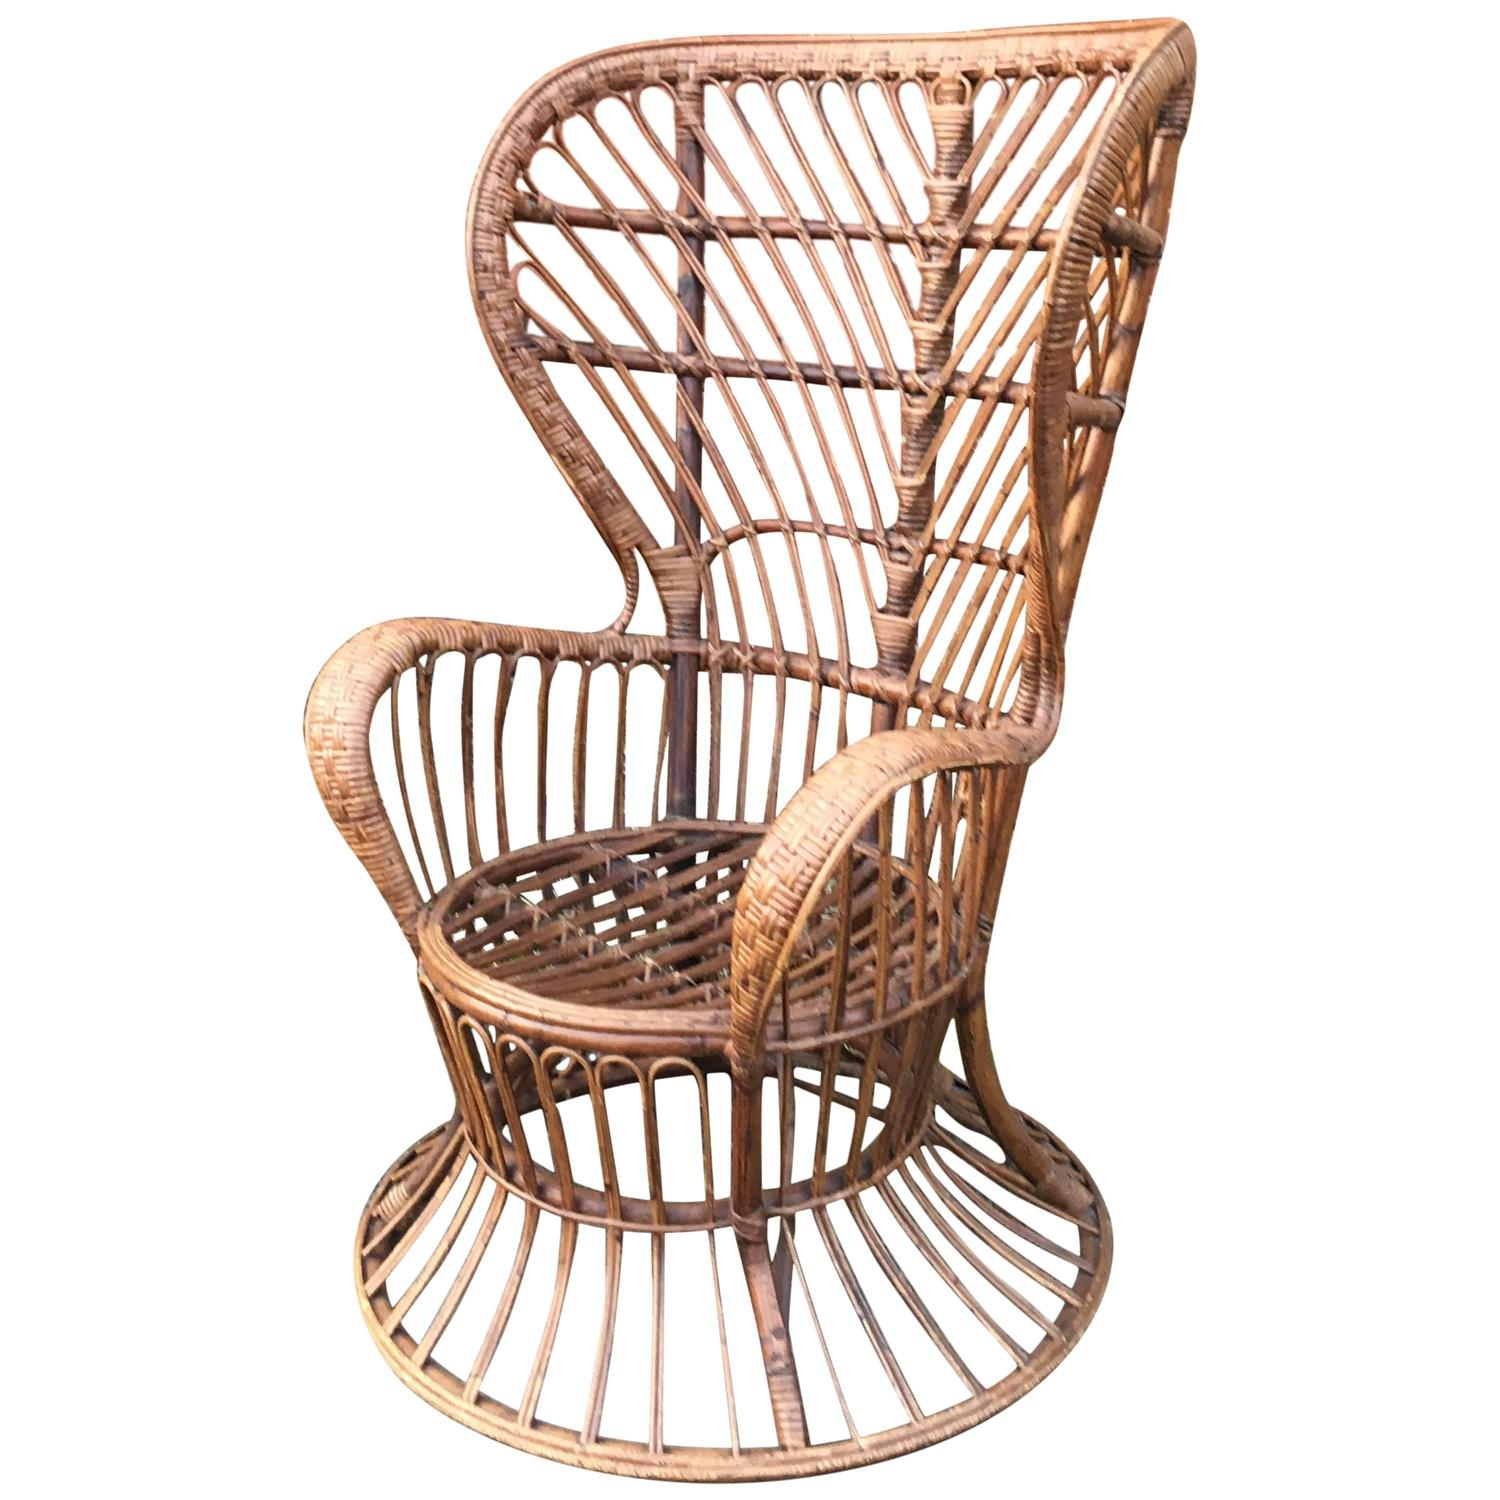 High Wingback Wicker Chair by Lio Carminati designed ca 1948 at